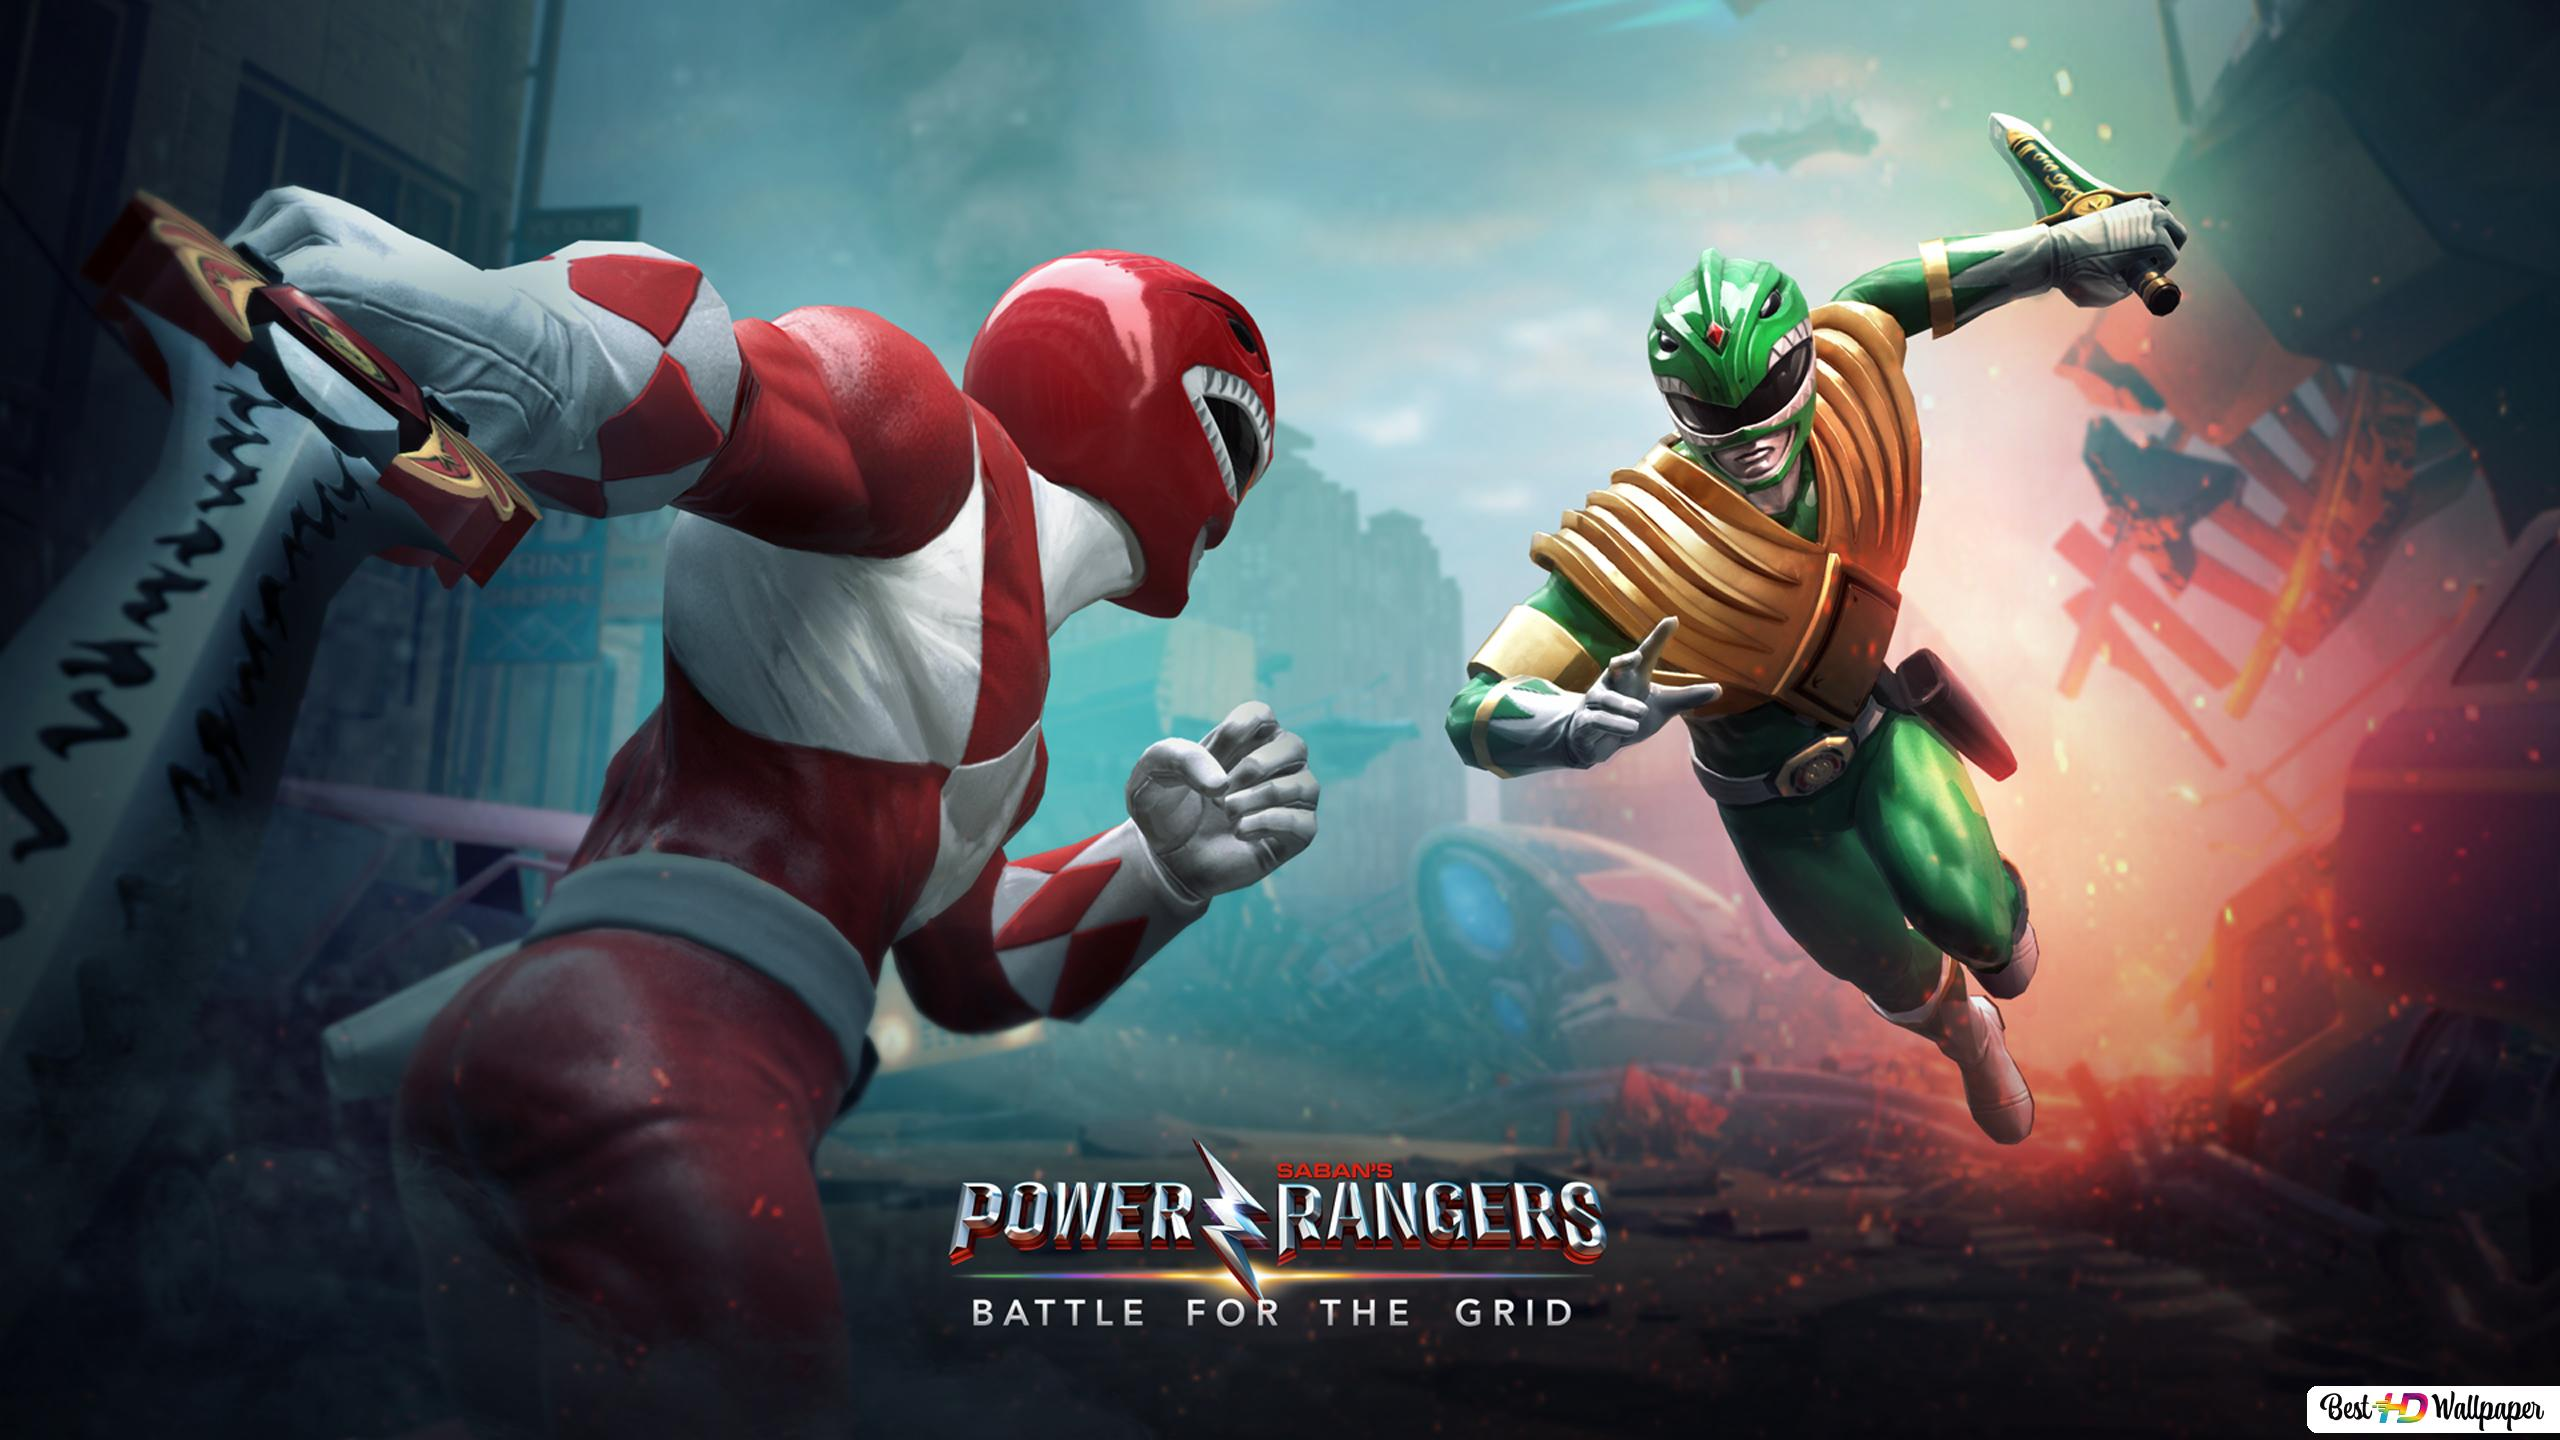 Power Rangers Battle For The Grid 2019 Hd Wallpaper Download